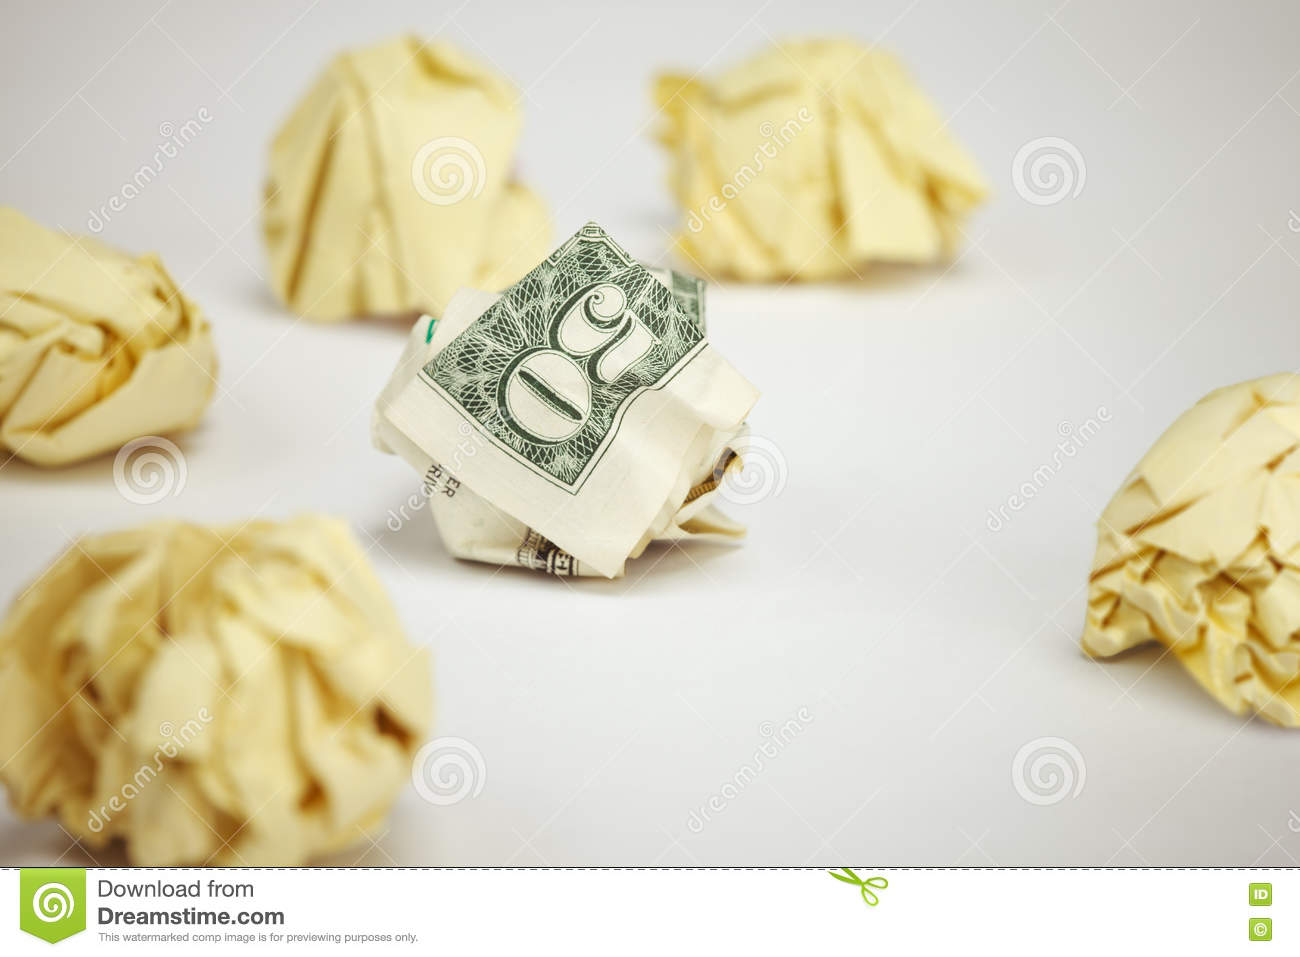 50 dollar bill among crumpled pieces of paper